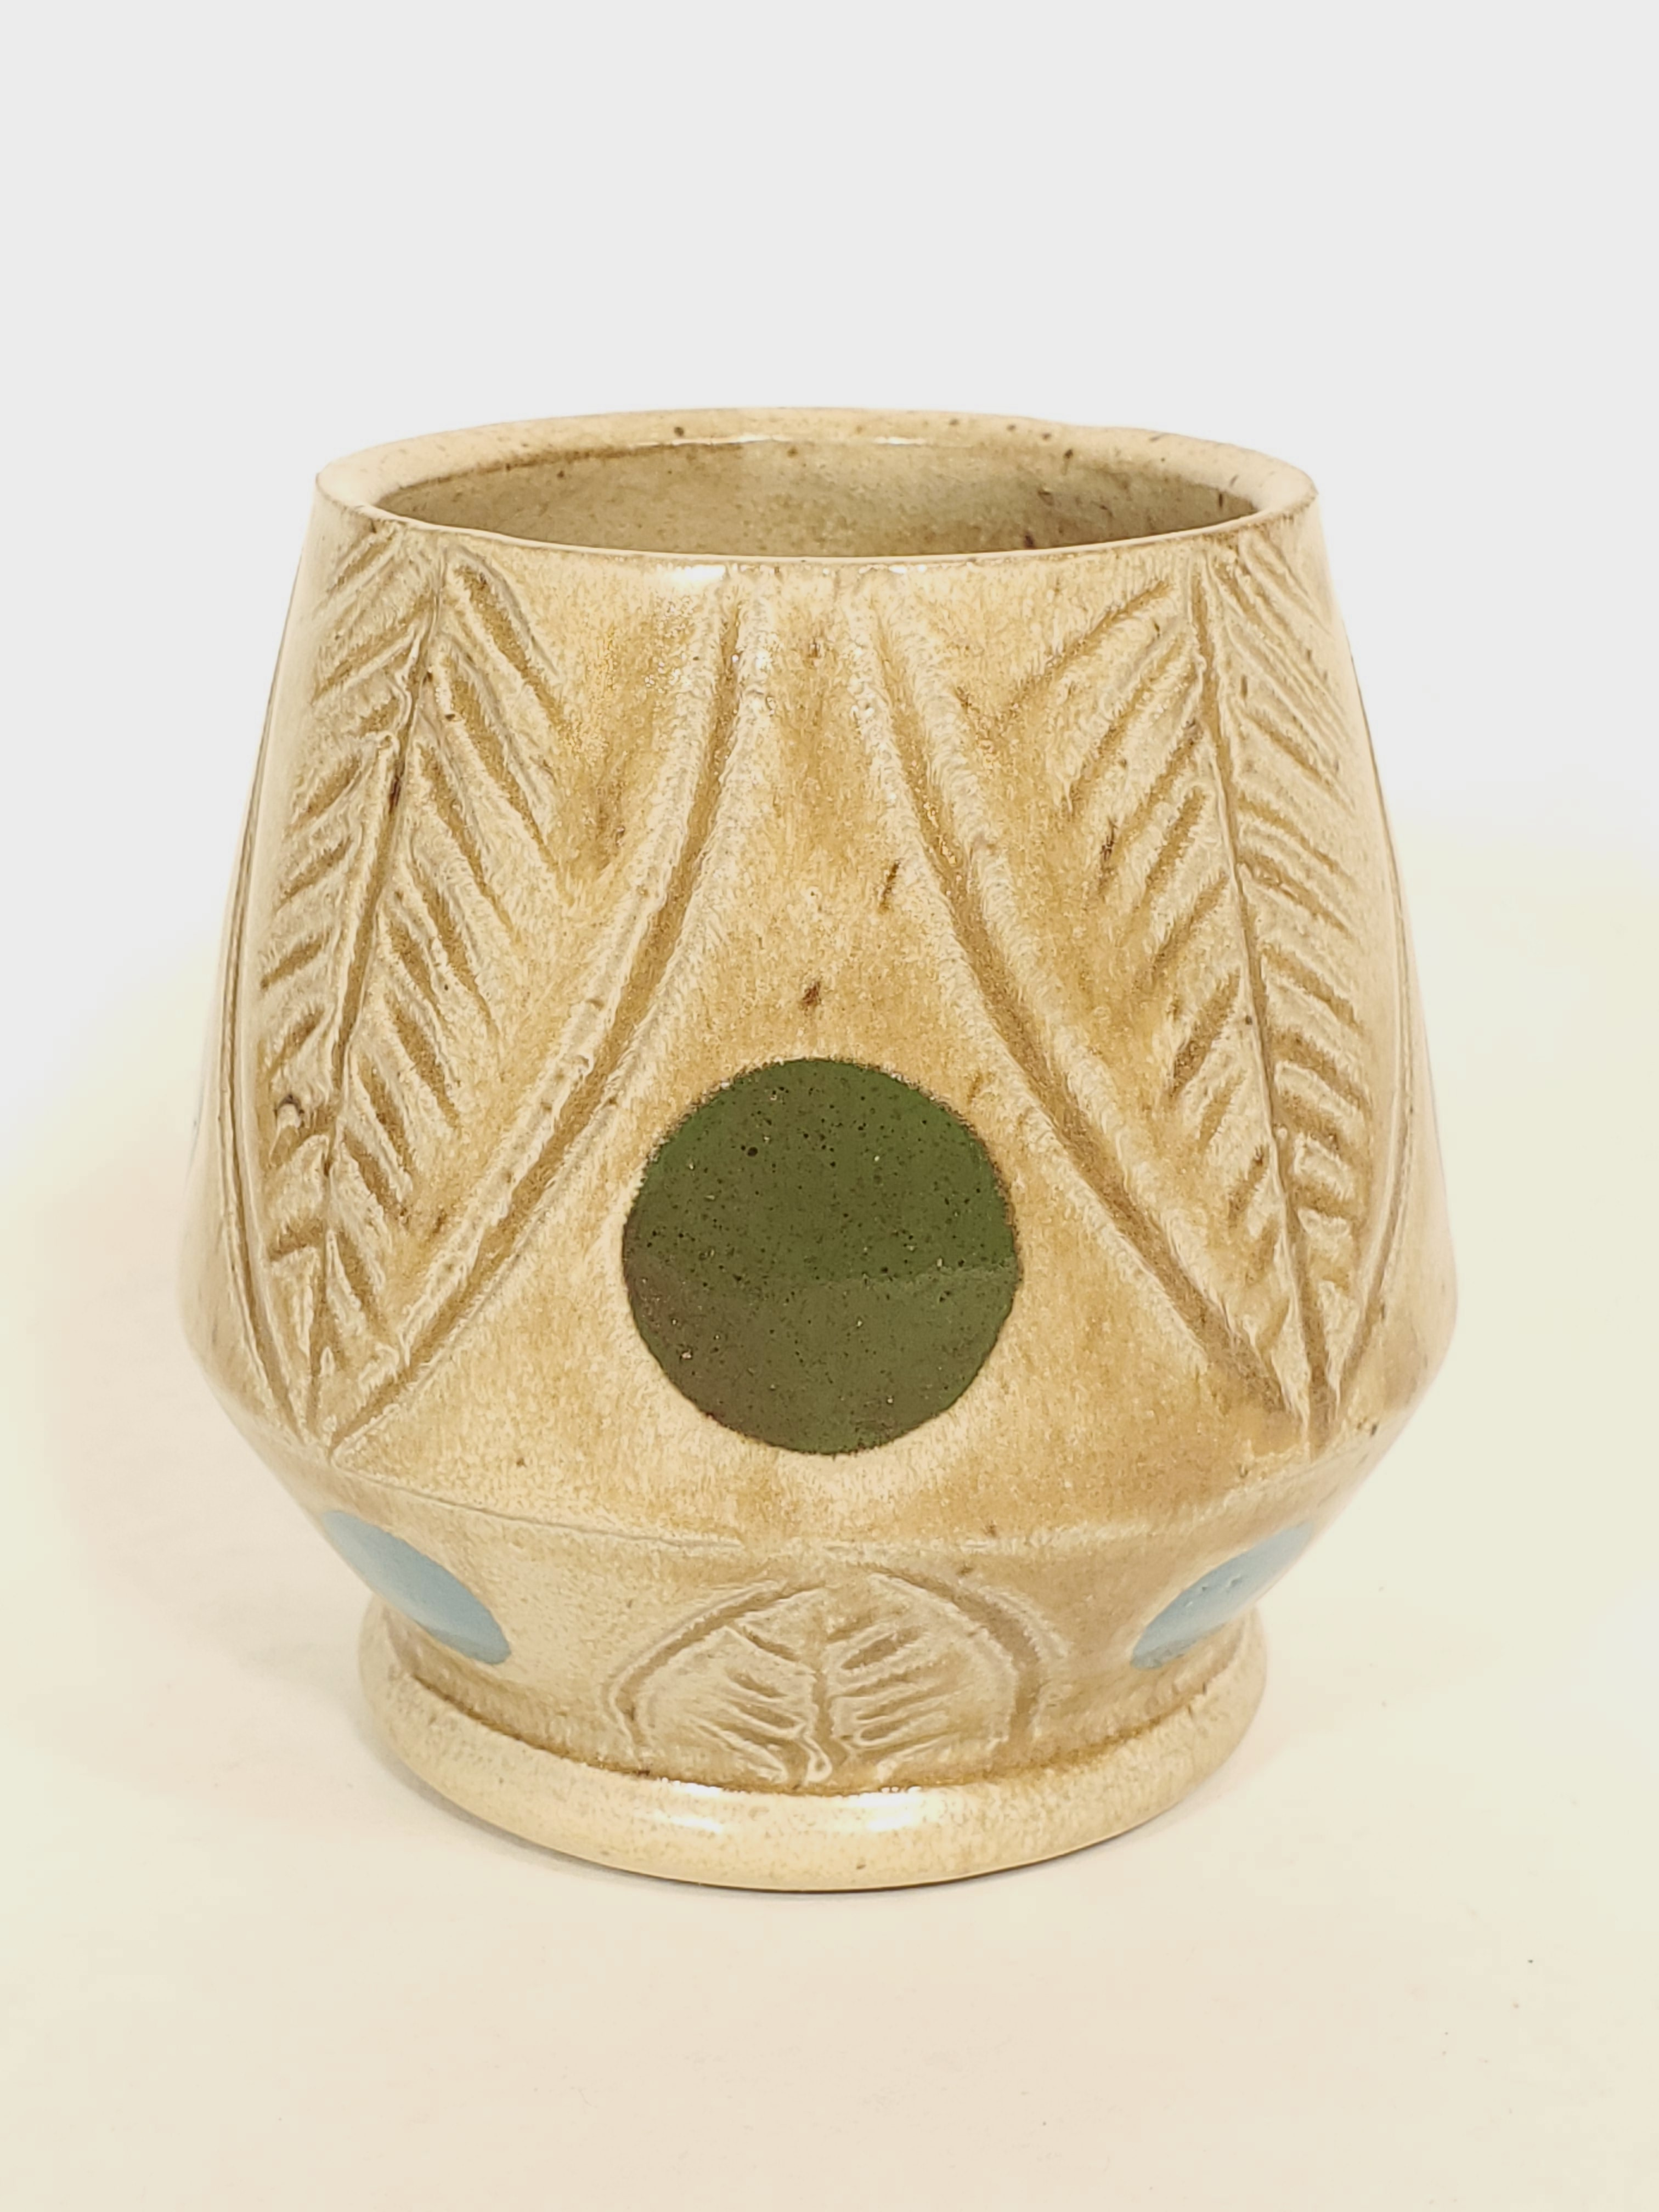 Small tan cup with leaves and dots